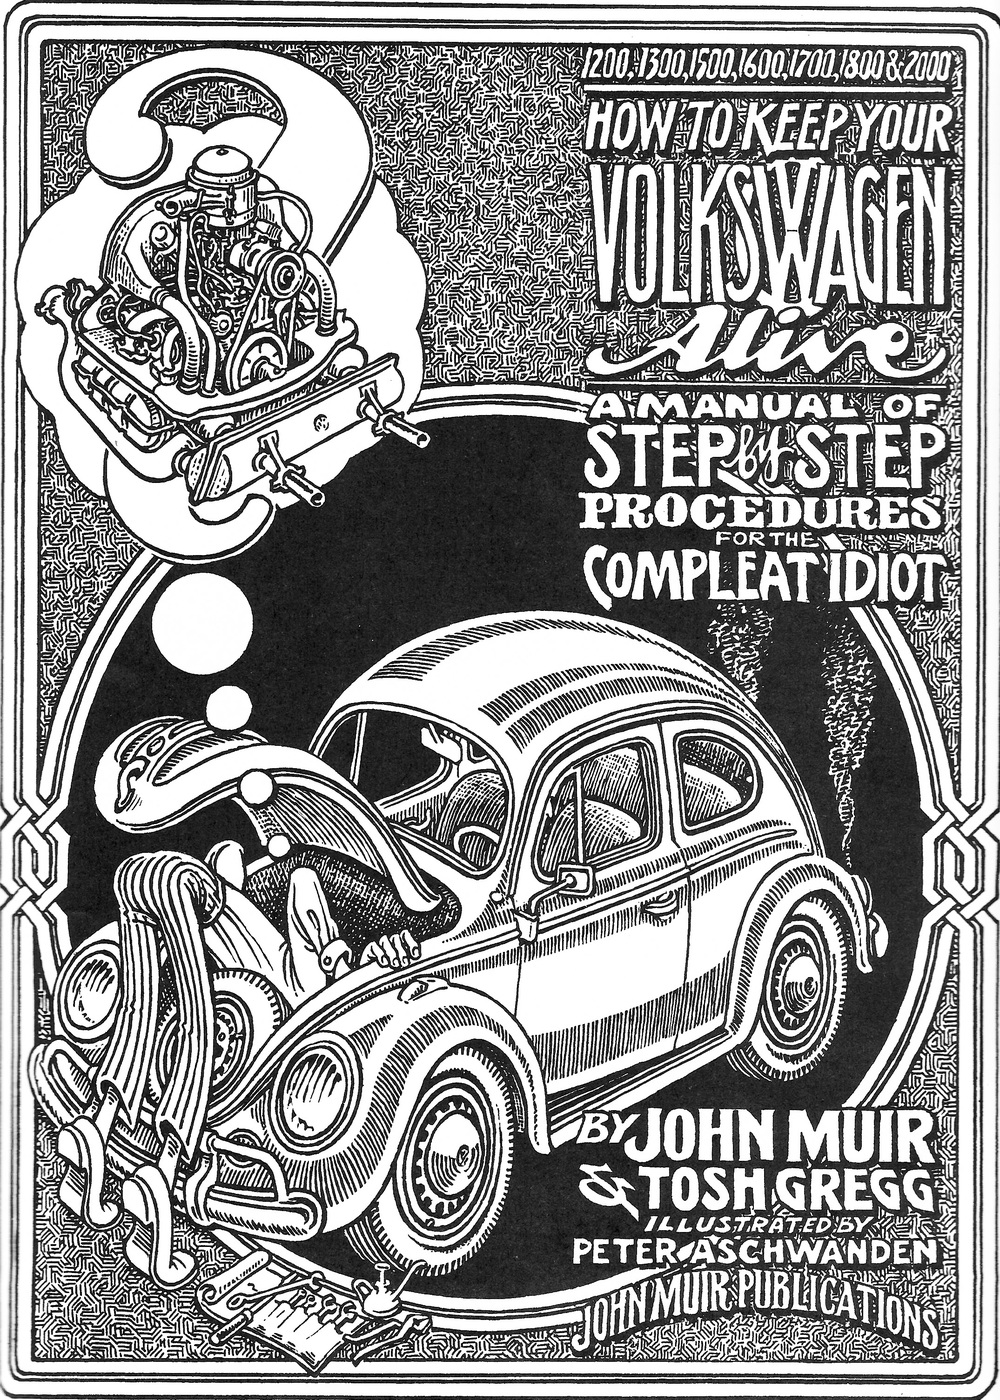 How to Keep Your Volkswagen Alive:   Illustrations by Peter Aschwanden in   How to Keep Your Volkswagen Alive: A Manual of Step by Step Procedures by the Compleat Idiot   (1929) by John Muir